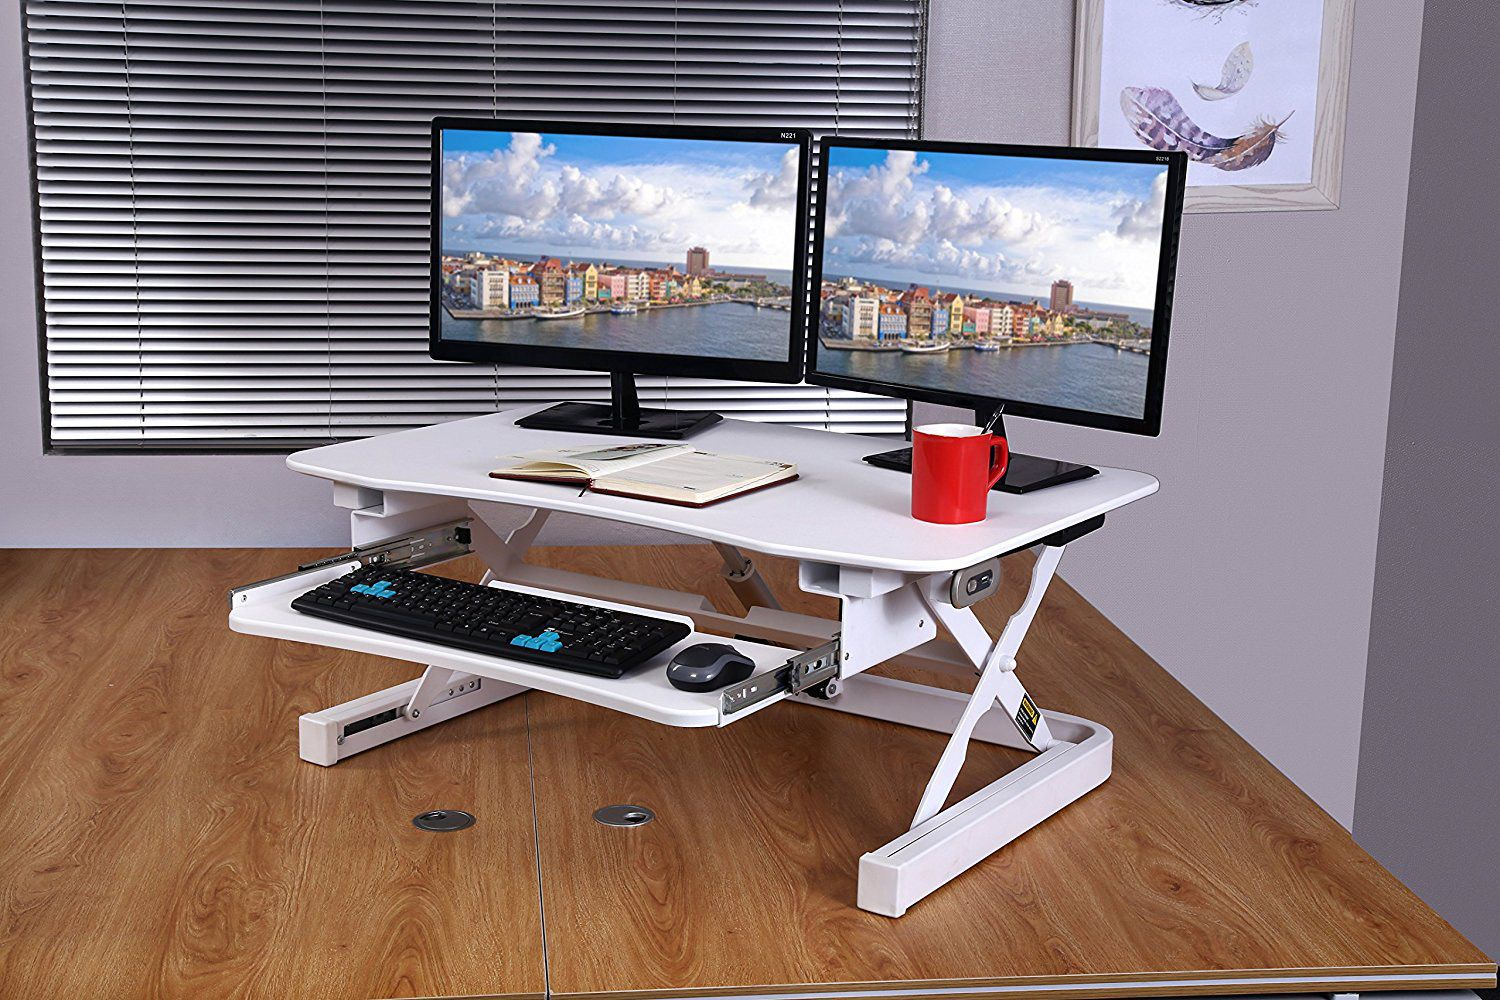 Height Adjustable Sit To Stand Electric Desk Converter The Desk